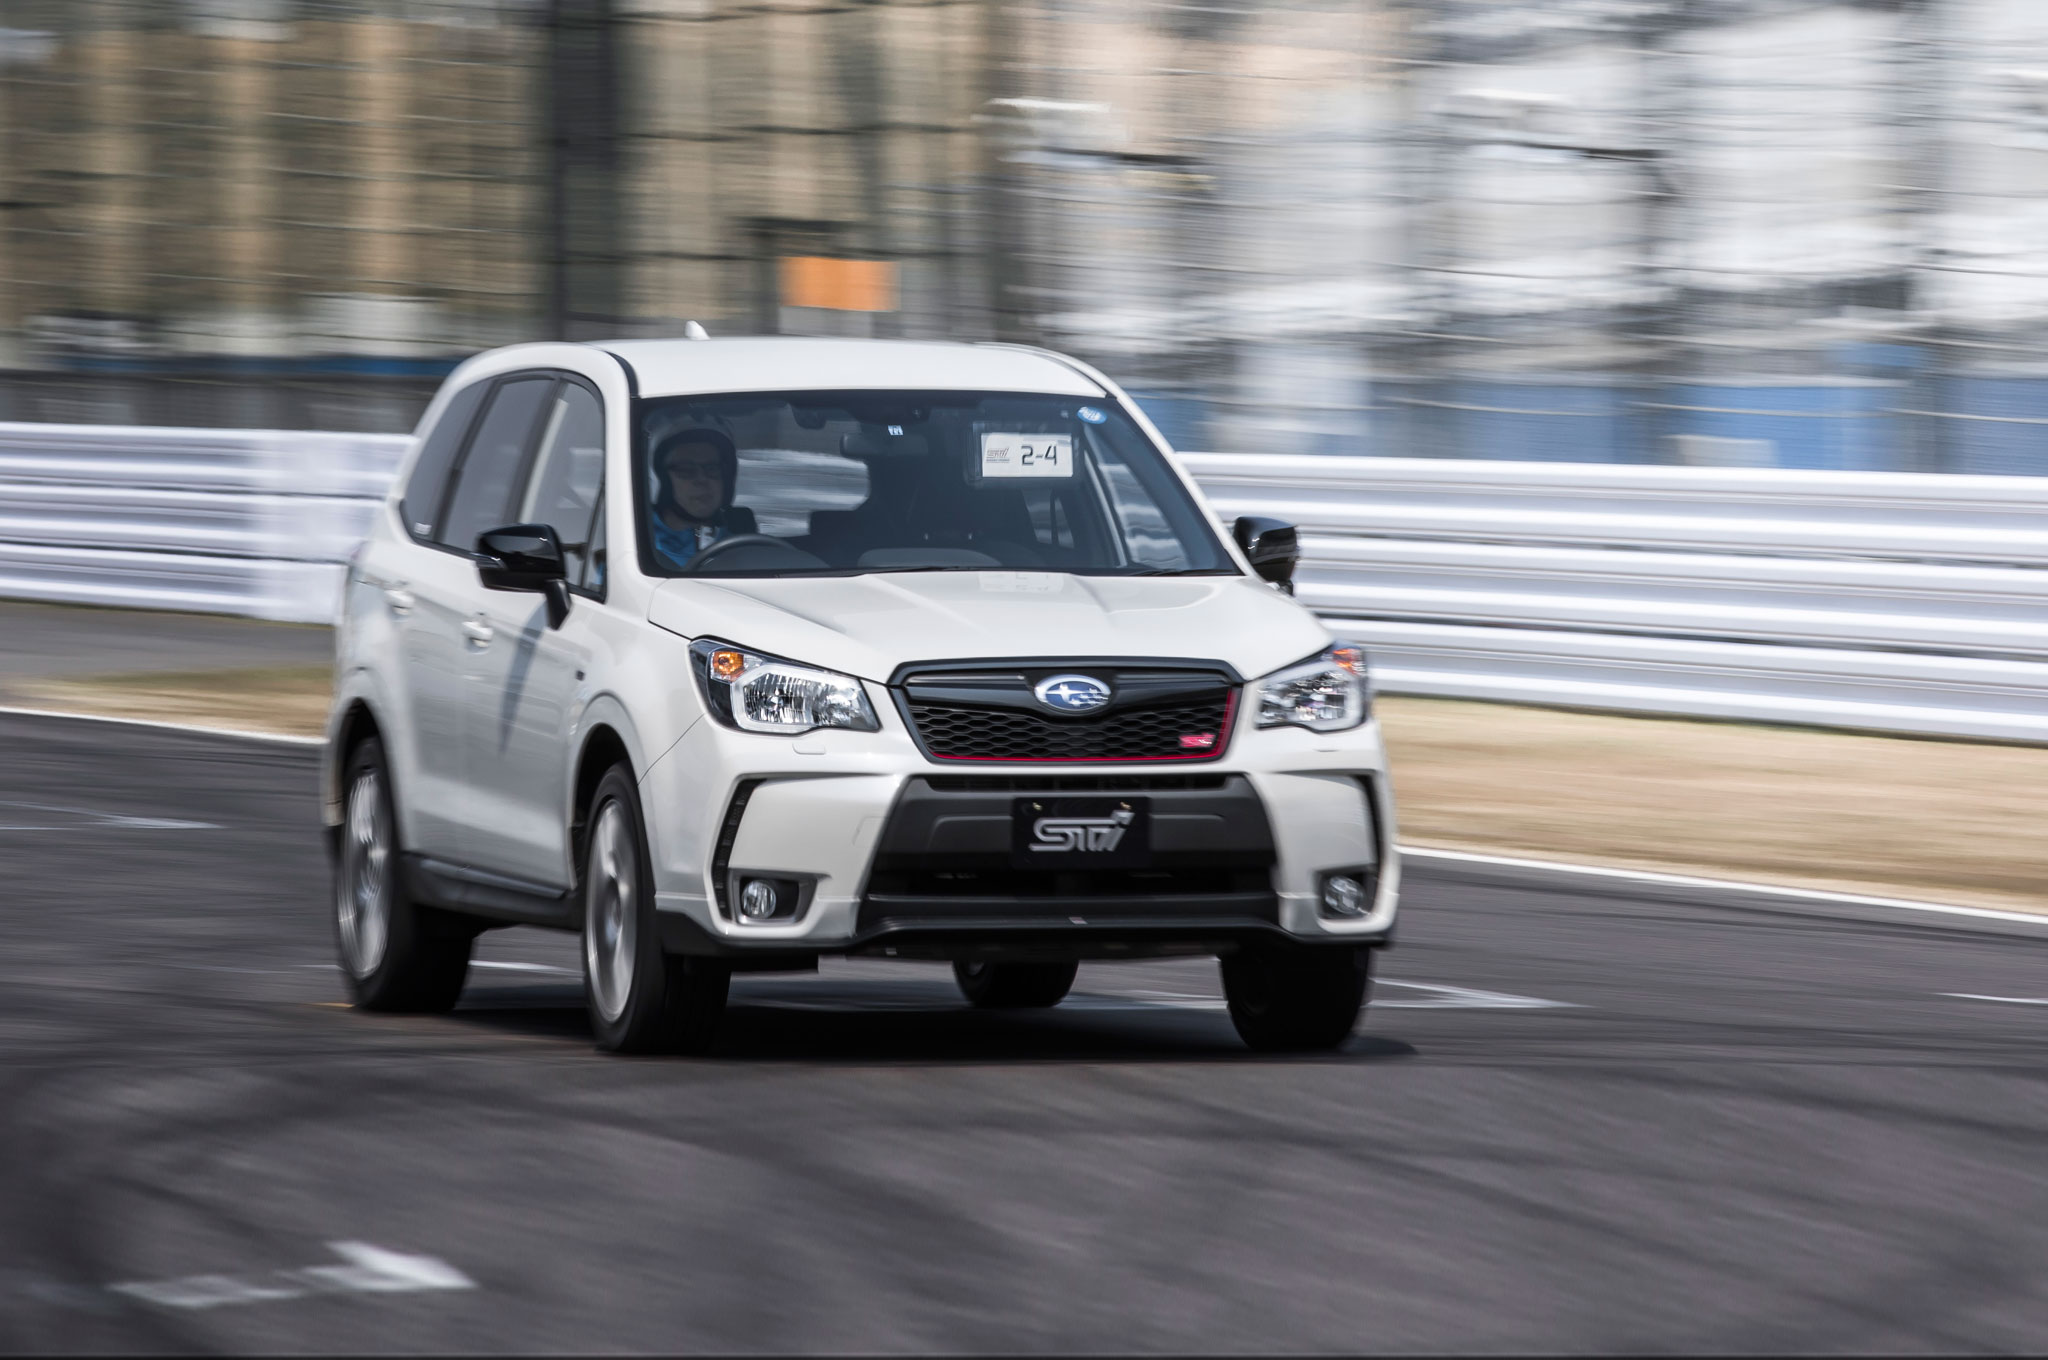 Forester Ts Sti >> 2015 Subaru Forester Ts Tuned By Sti Review